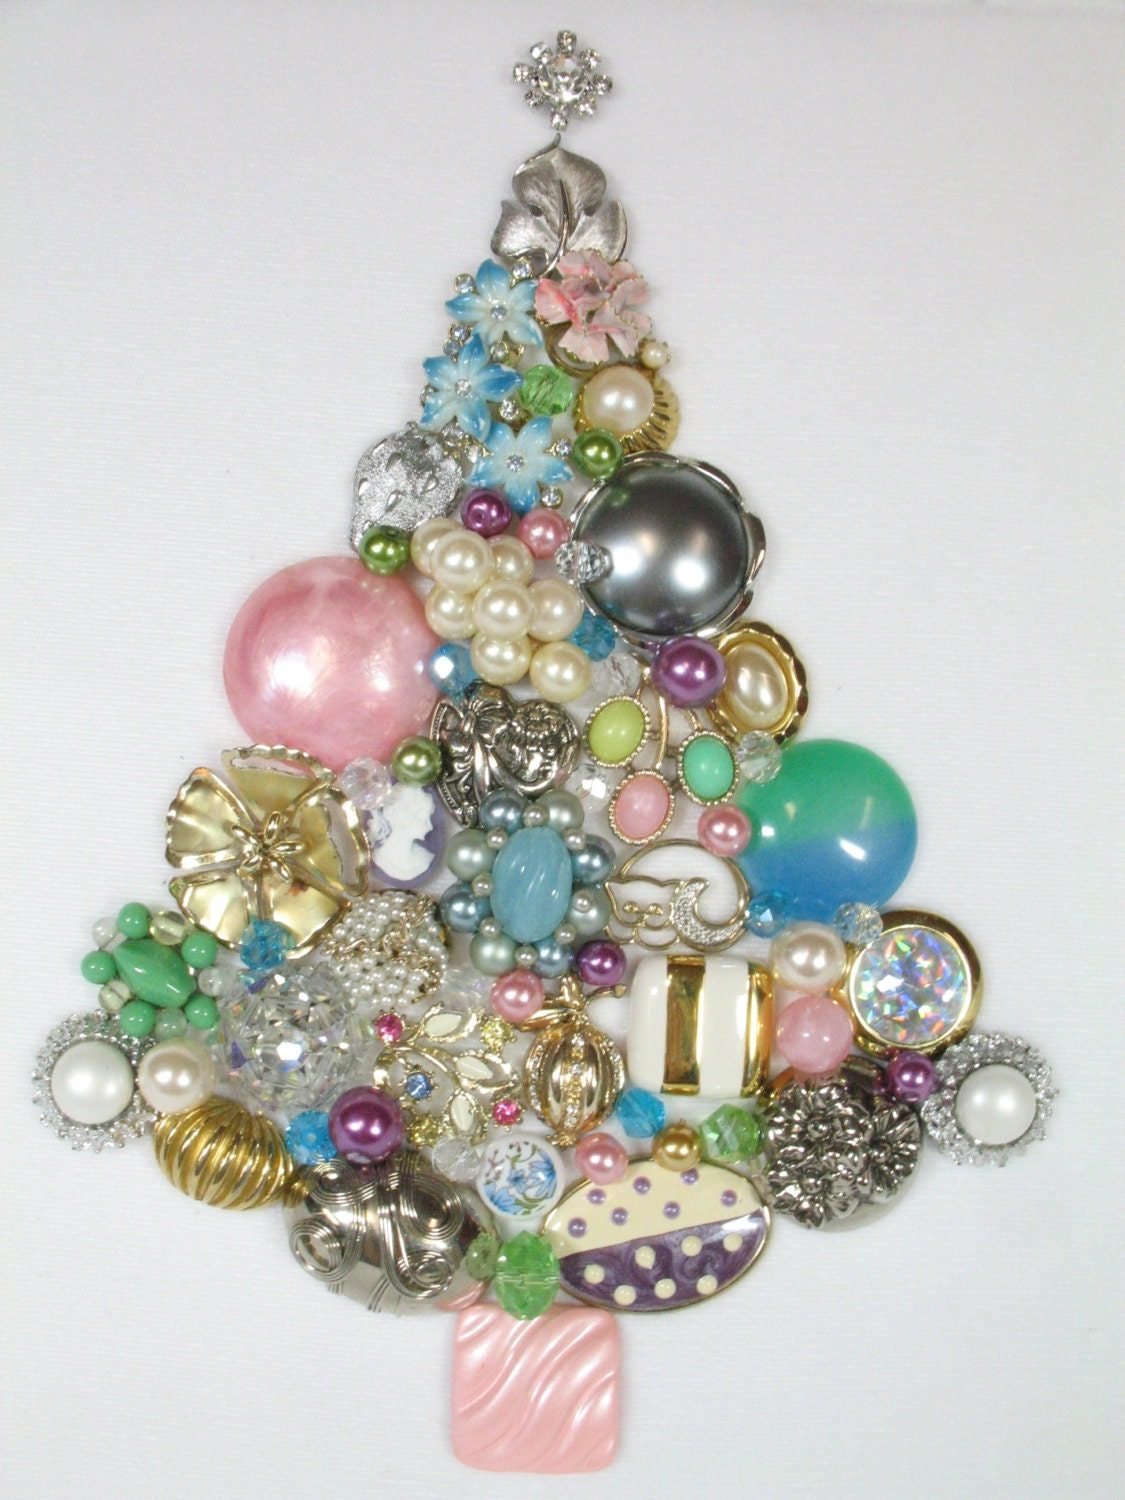 Framed Vintage Jewelry Christmas Tree Tinsel by Sunny Day